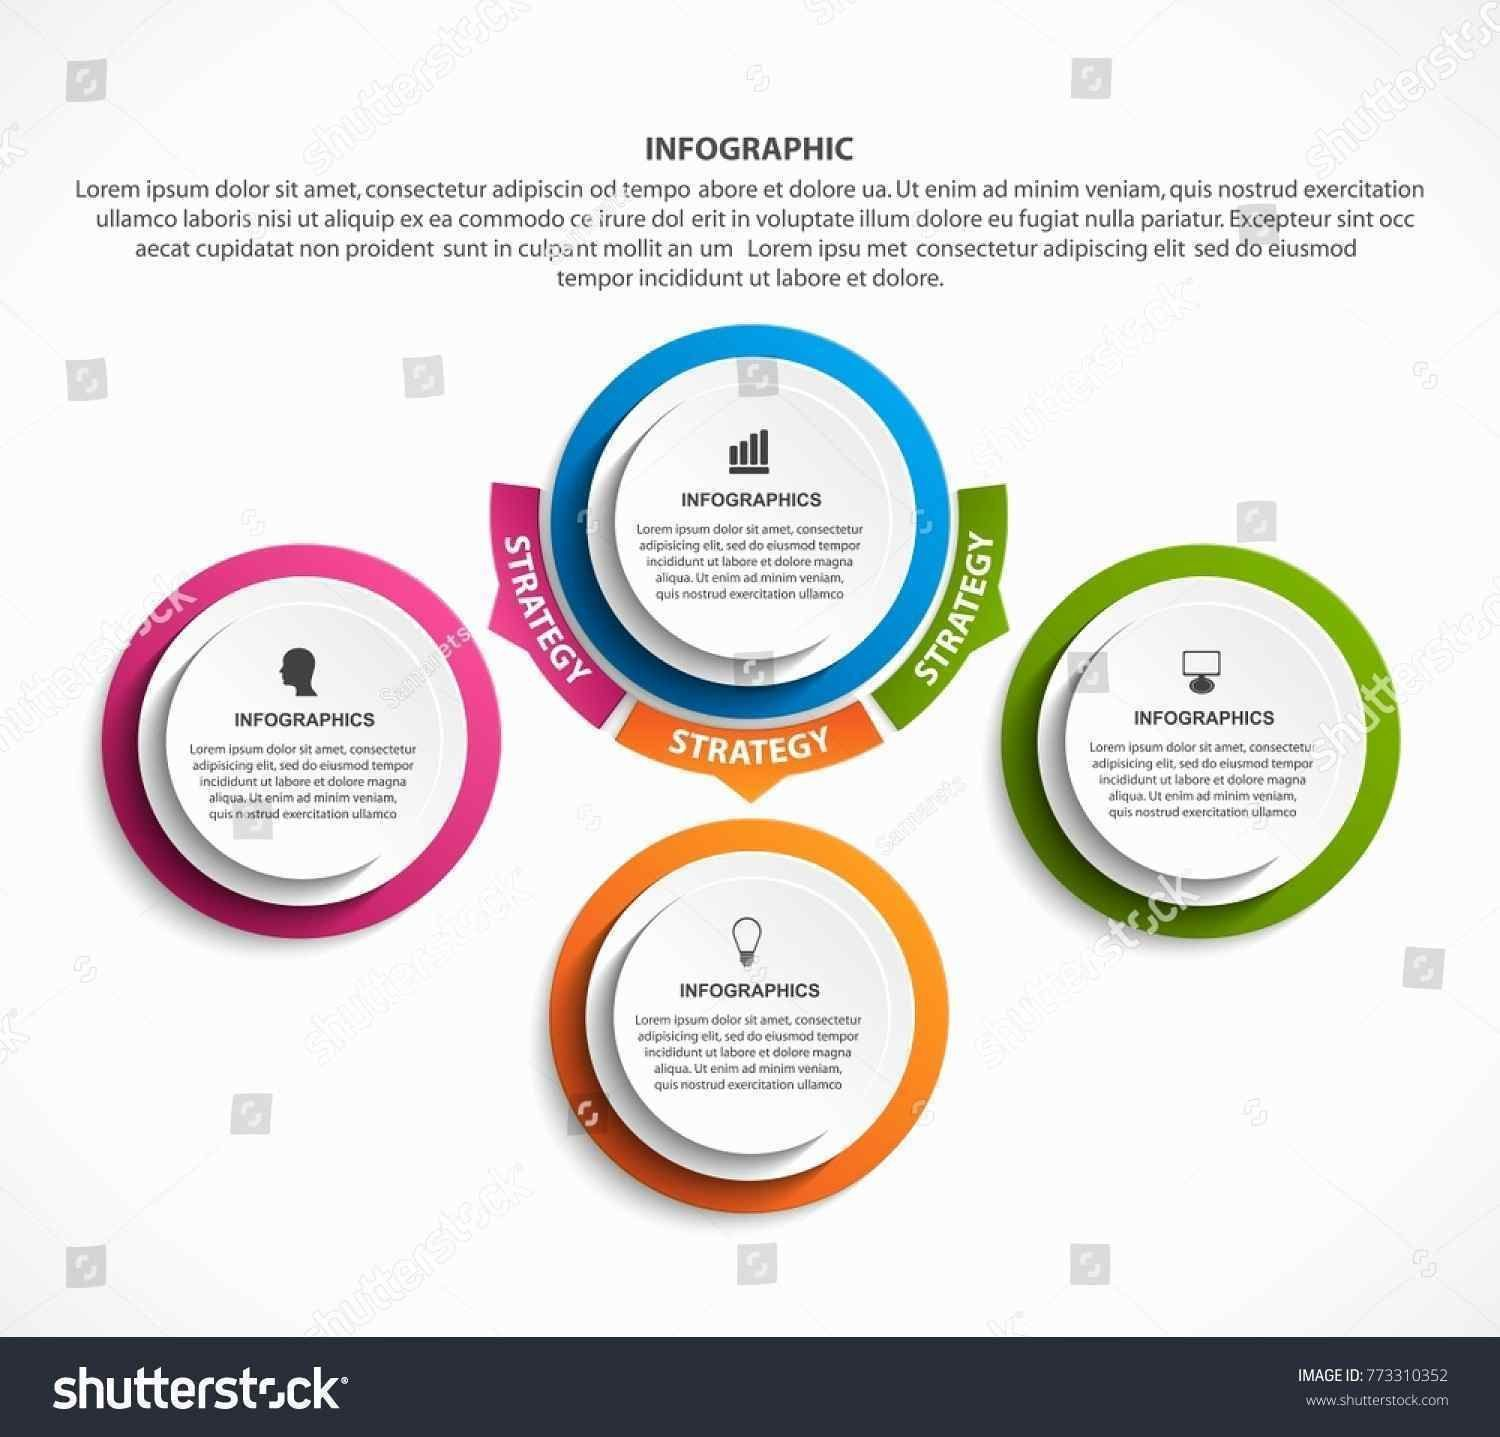 Change Infographic Aˆs E A Change Template Powerpoint With Regard To Change Temp Free Business Card Templates Powerpoint Template Free Powerpoint Templates